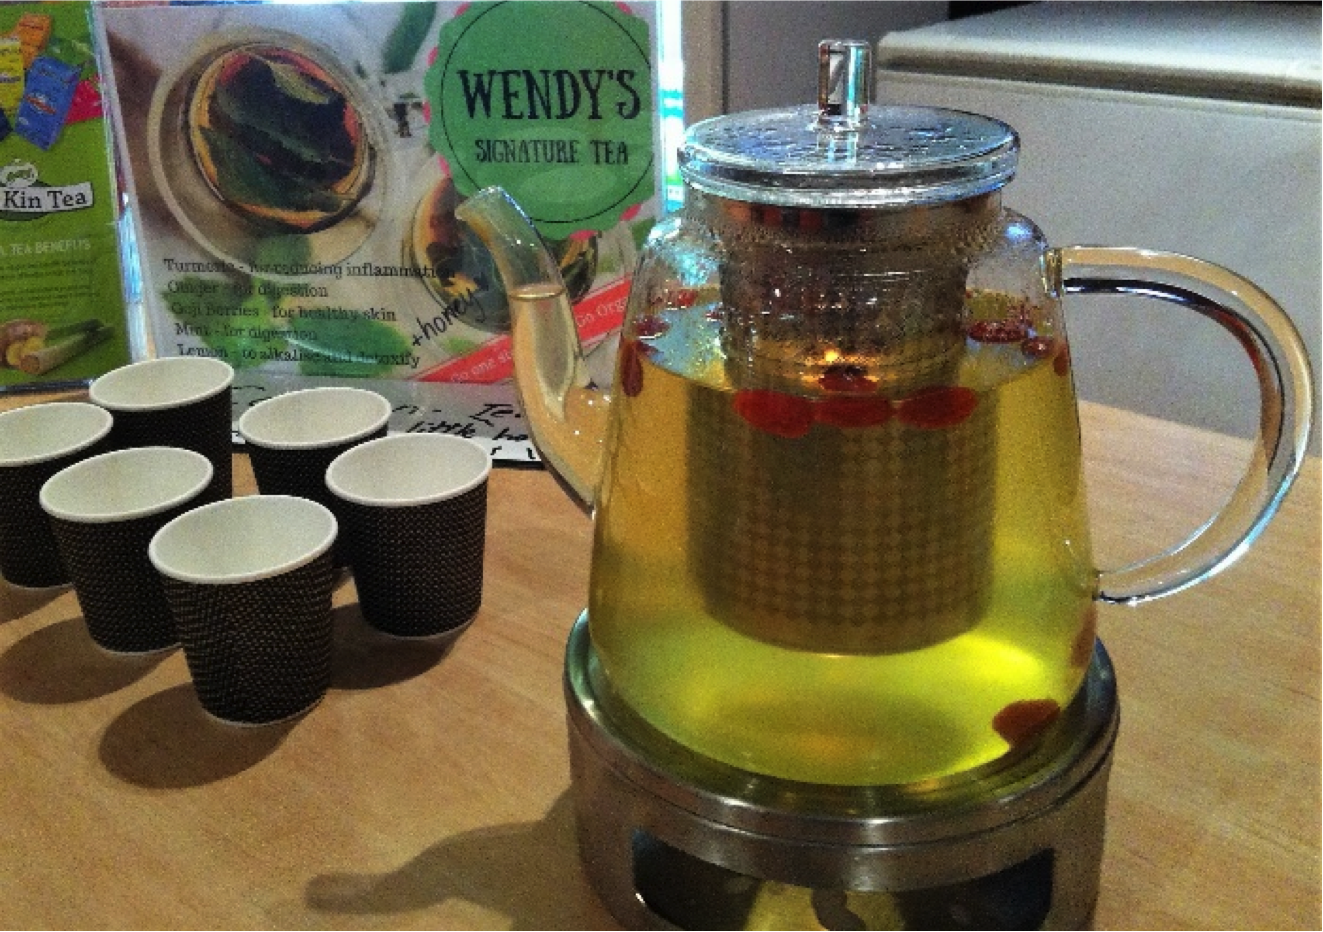 Wendy's Signature Healing Tea